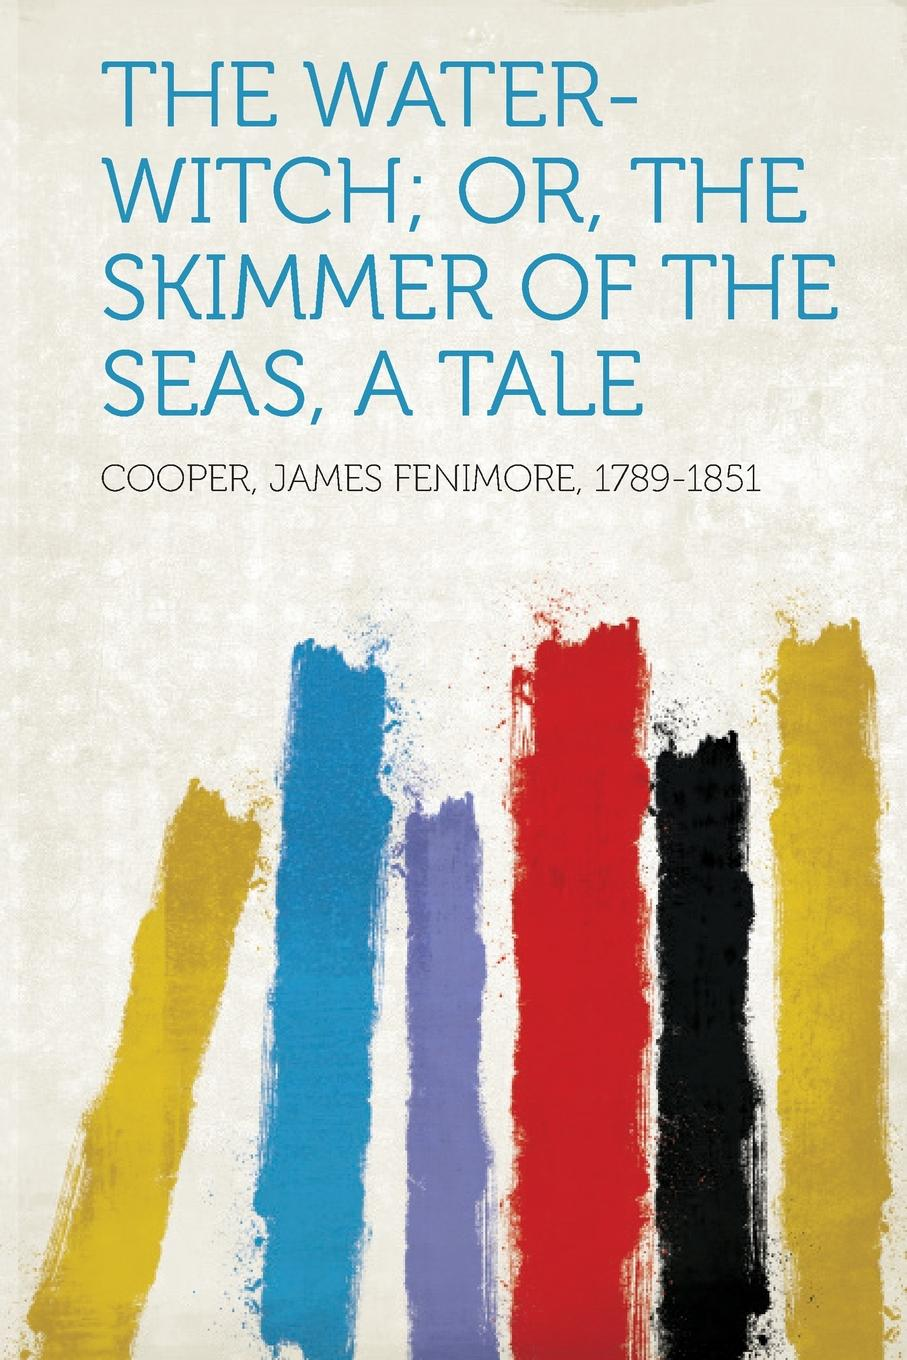 Cooper James Fenimore 1789-1851 The Water-Witch; Or, The Skimmer of the Seas, A Tale james fenimore cooper the water witch or the skimmer of the seas